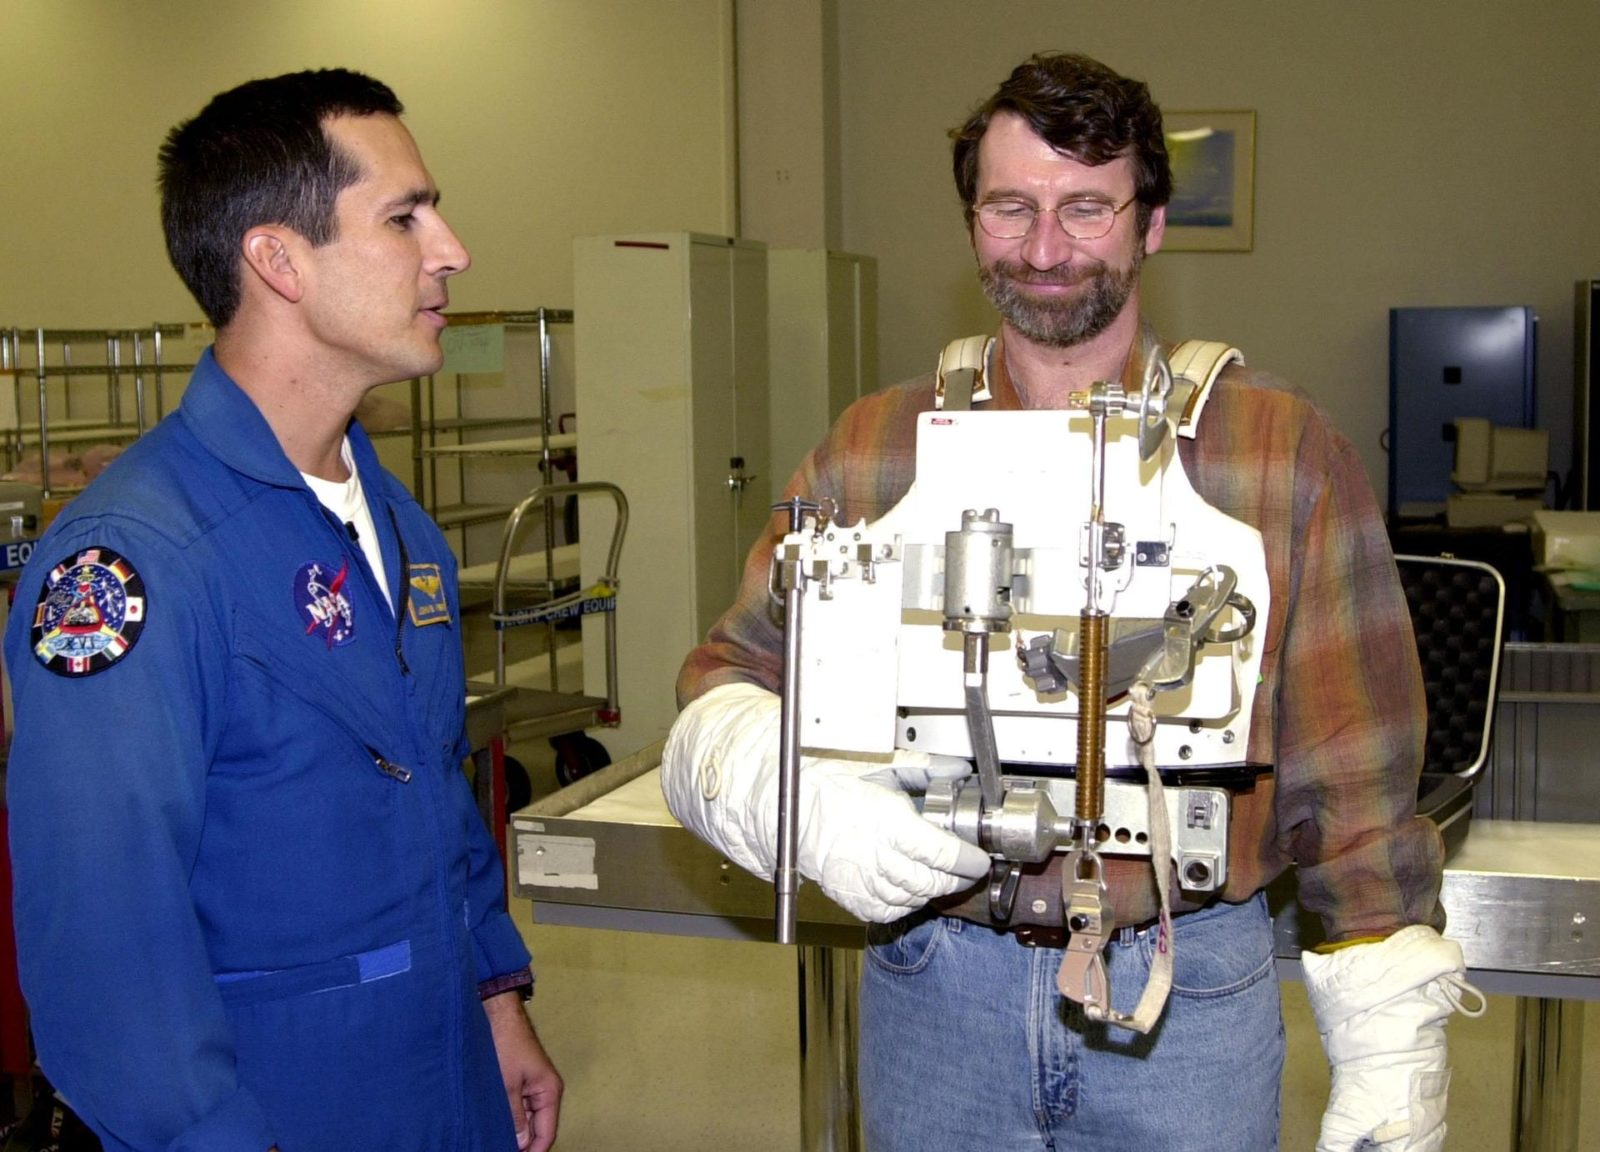 """KENNEDY SPACE CENTER, FLA. -- While astronaut John Herrington (left) looks on, Norm Abram tries on a tool carrier used in space. Abram is master carpenter of television's """"This Old House"""" and """"The New Yankee Workshop."""" He is at KSC to film an episode of """"This Old House. KSC-00padig128"""